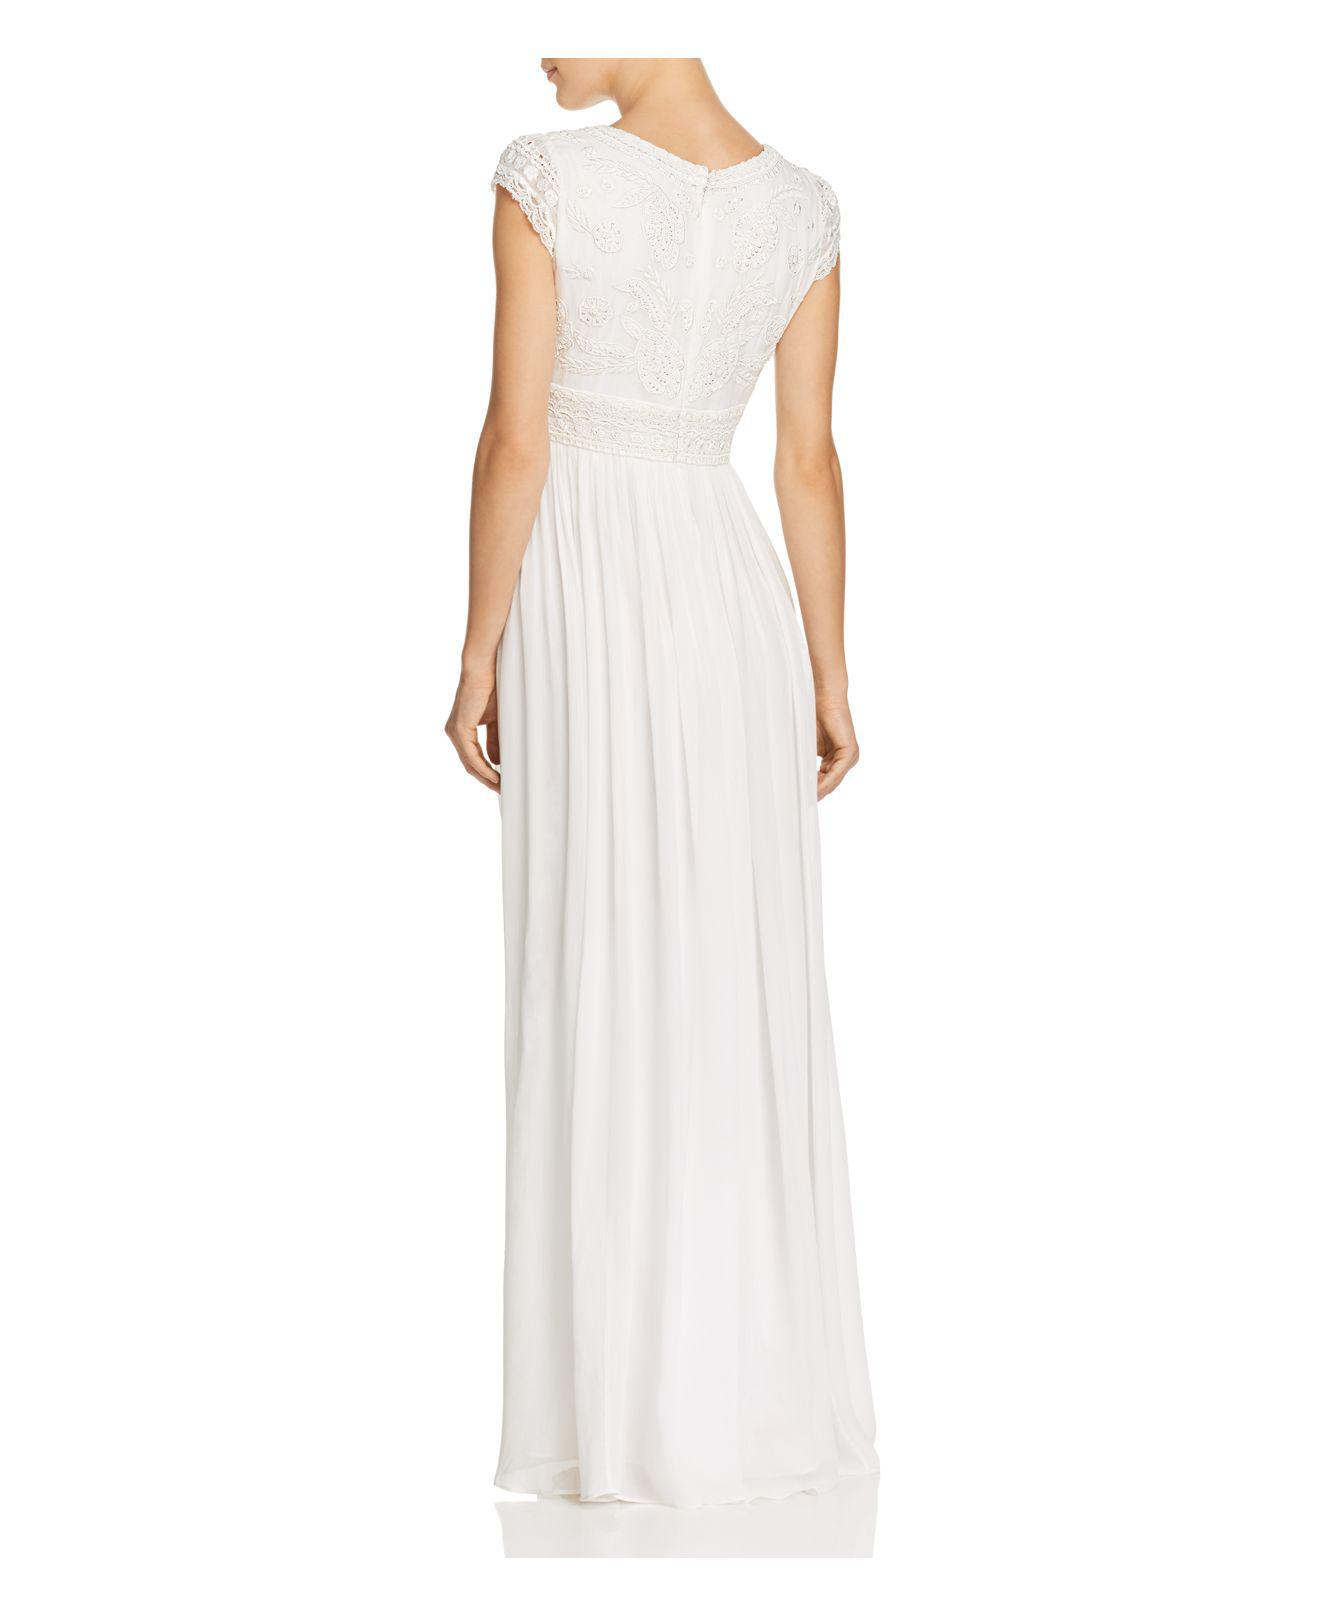 Lyst - French Connection Palmero Embellished Wedding Dress in White